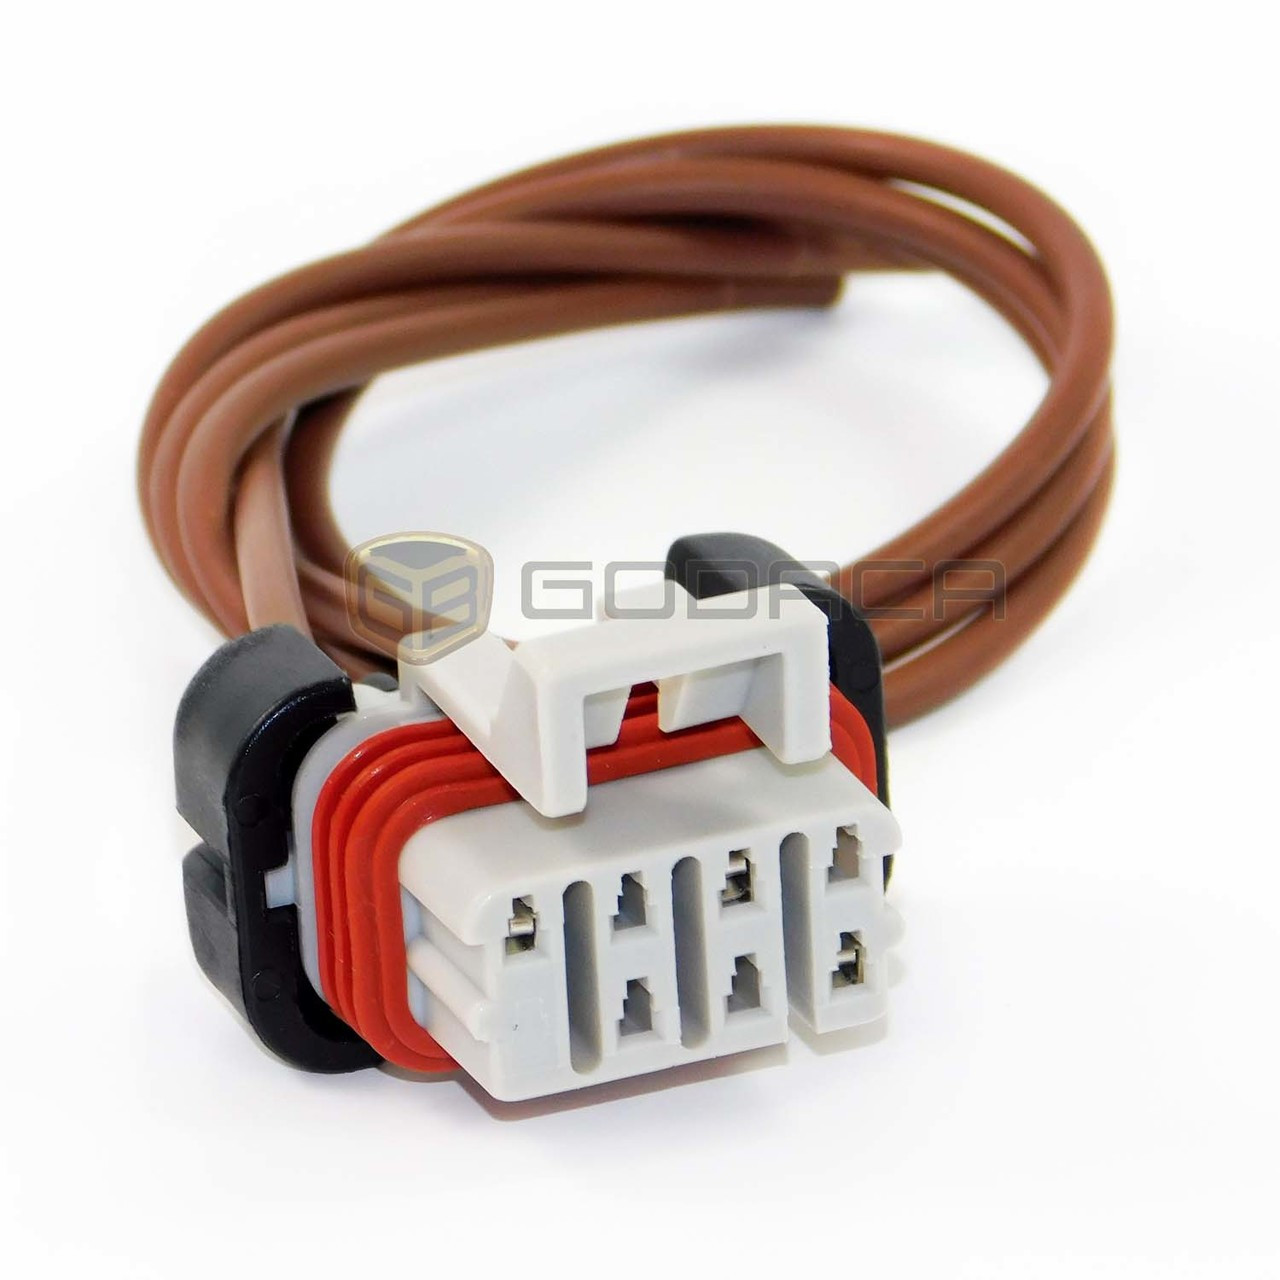 hight resolution of 1x connector 7 way 3 wires for freightliner columbia headlight bulb godaca llc